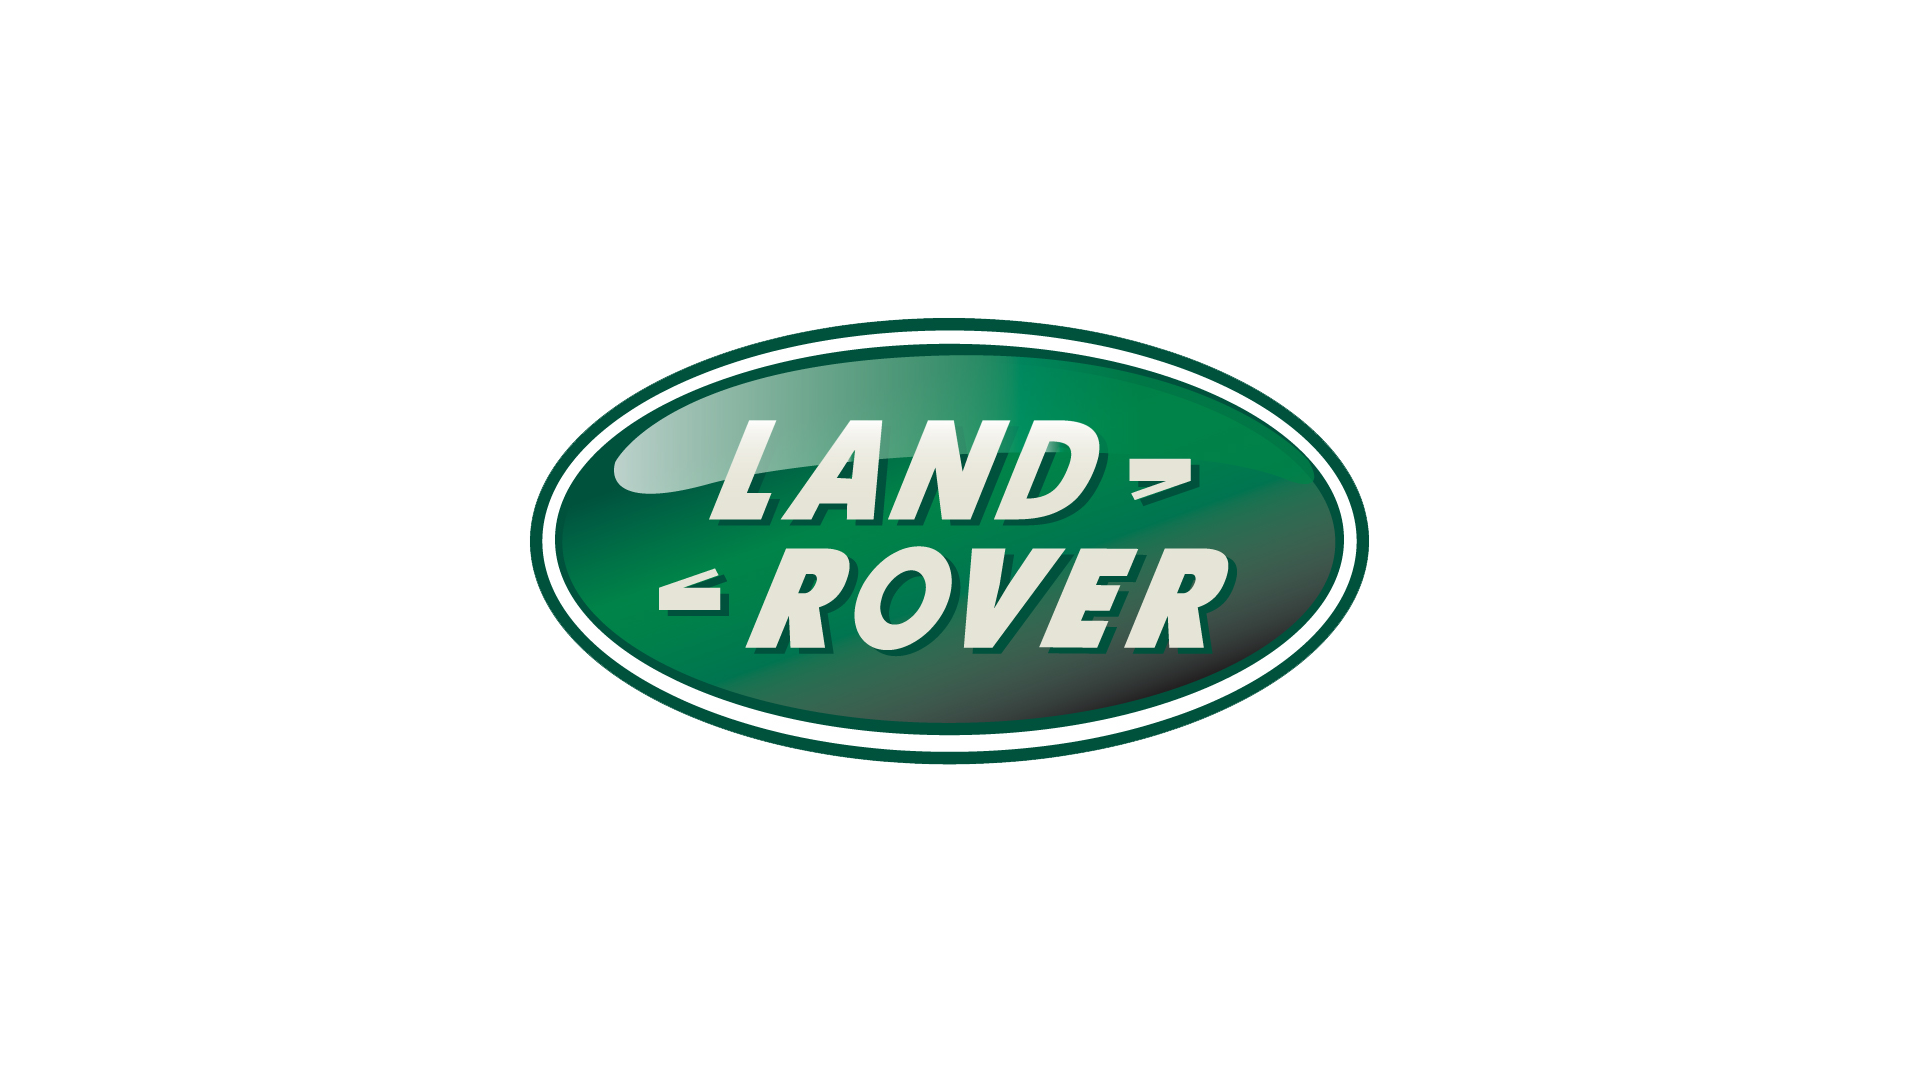 Land Rover Logo Hd Png - Land